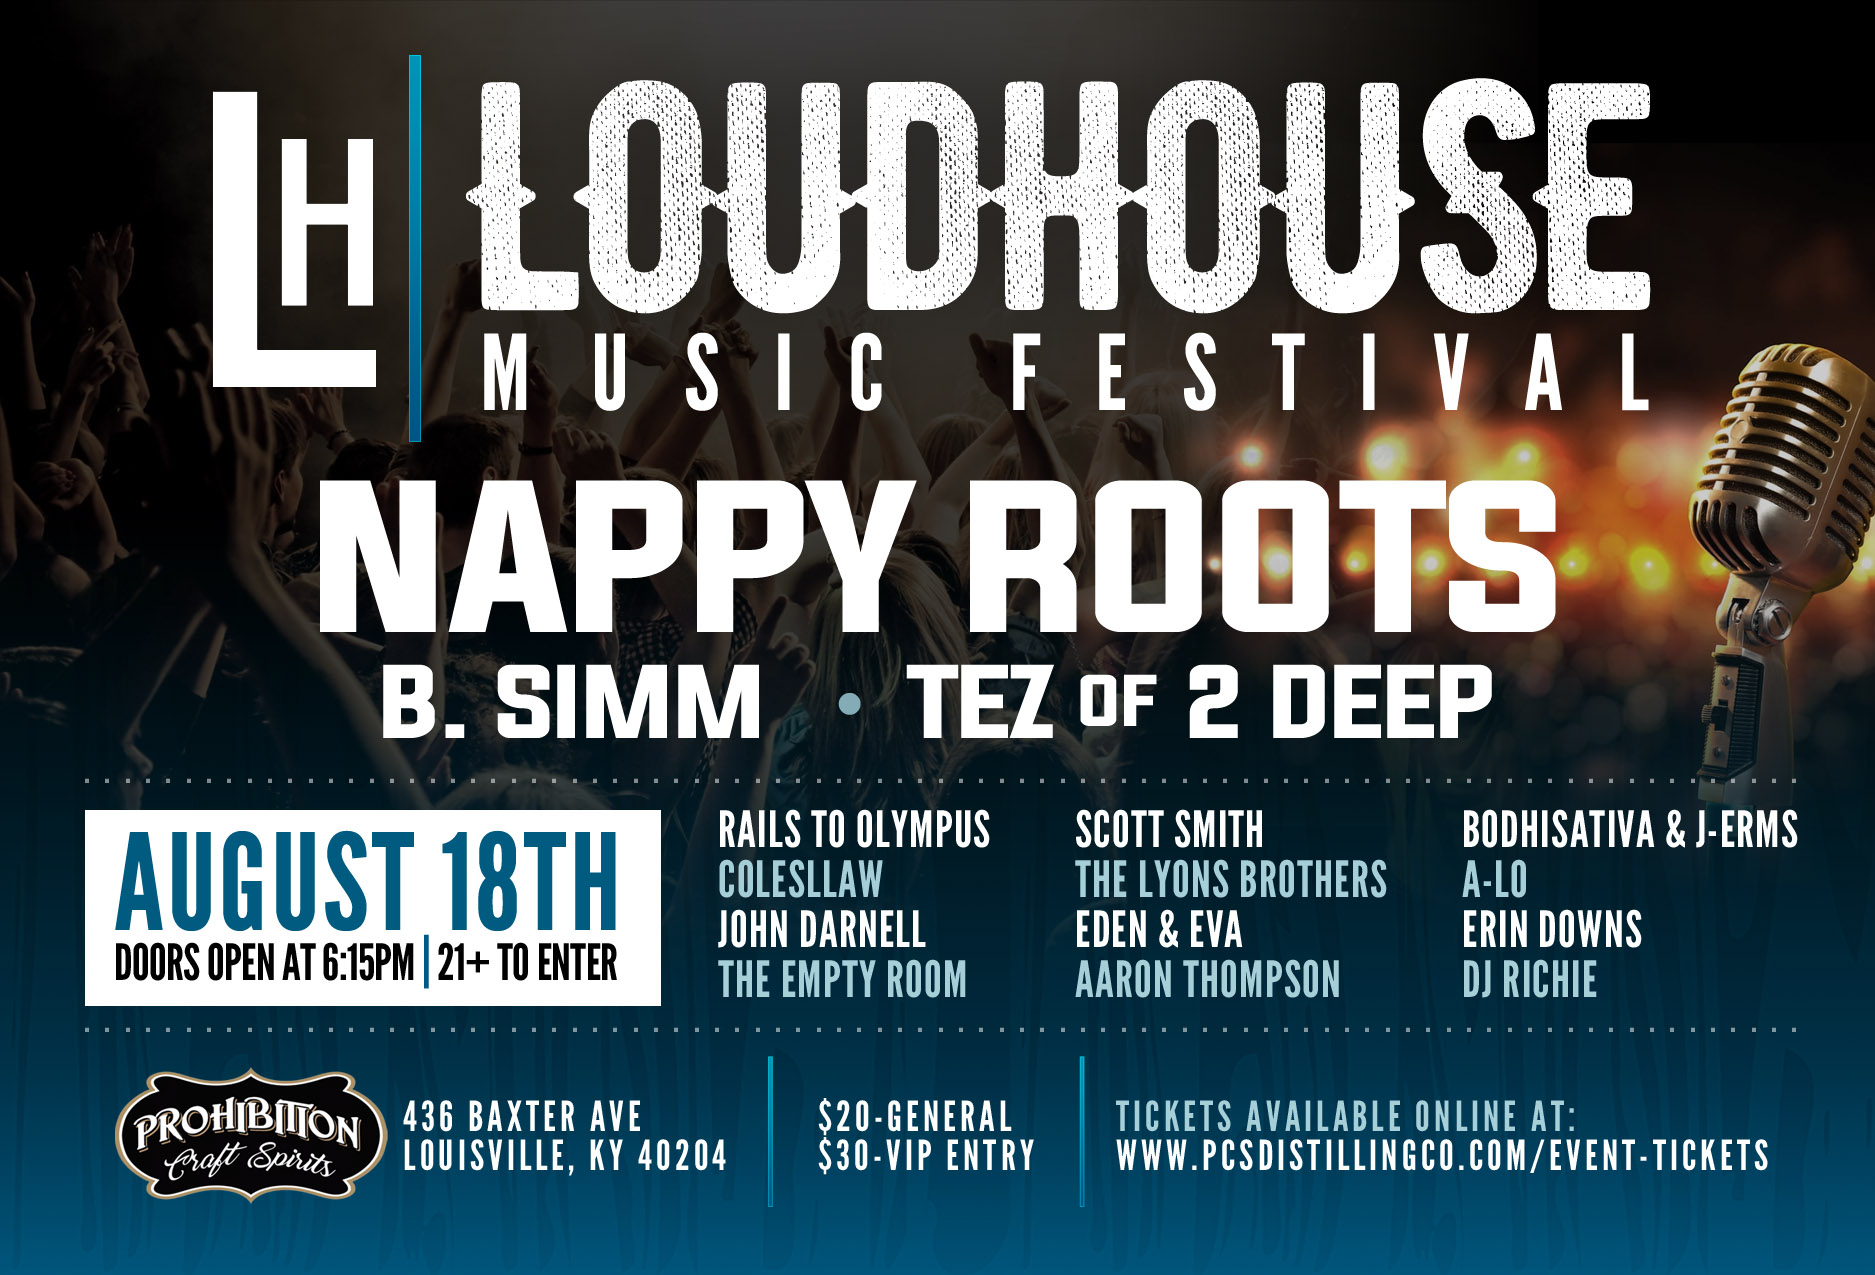 Nappy Roots (Grammy Nominees), B Simm, 2 Deep and Johnny D featured at the Loudhouse Music Festival August 18th